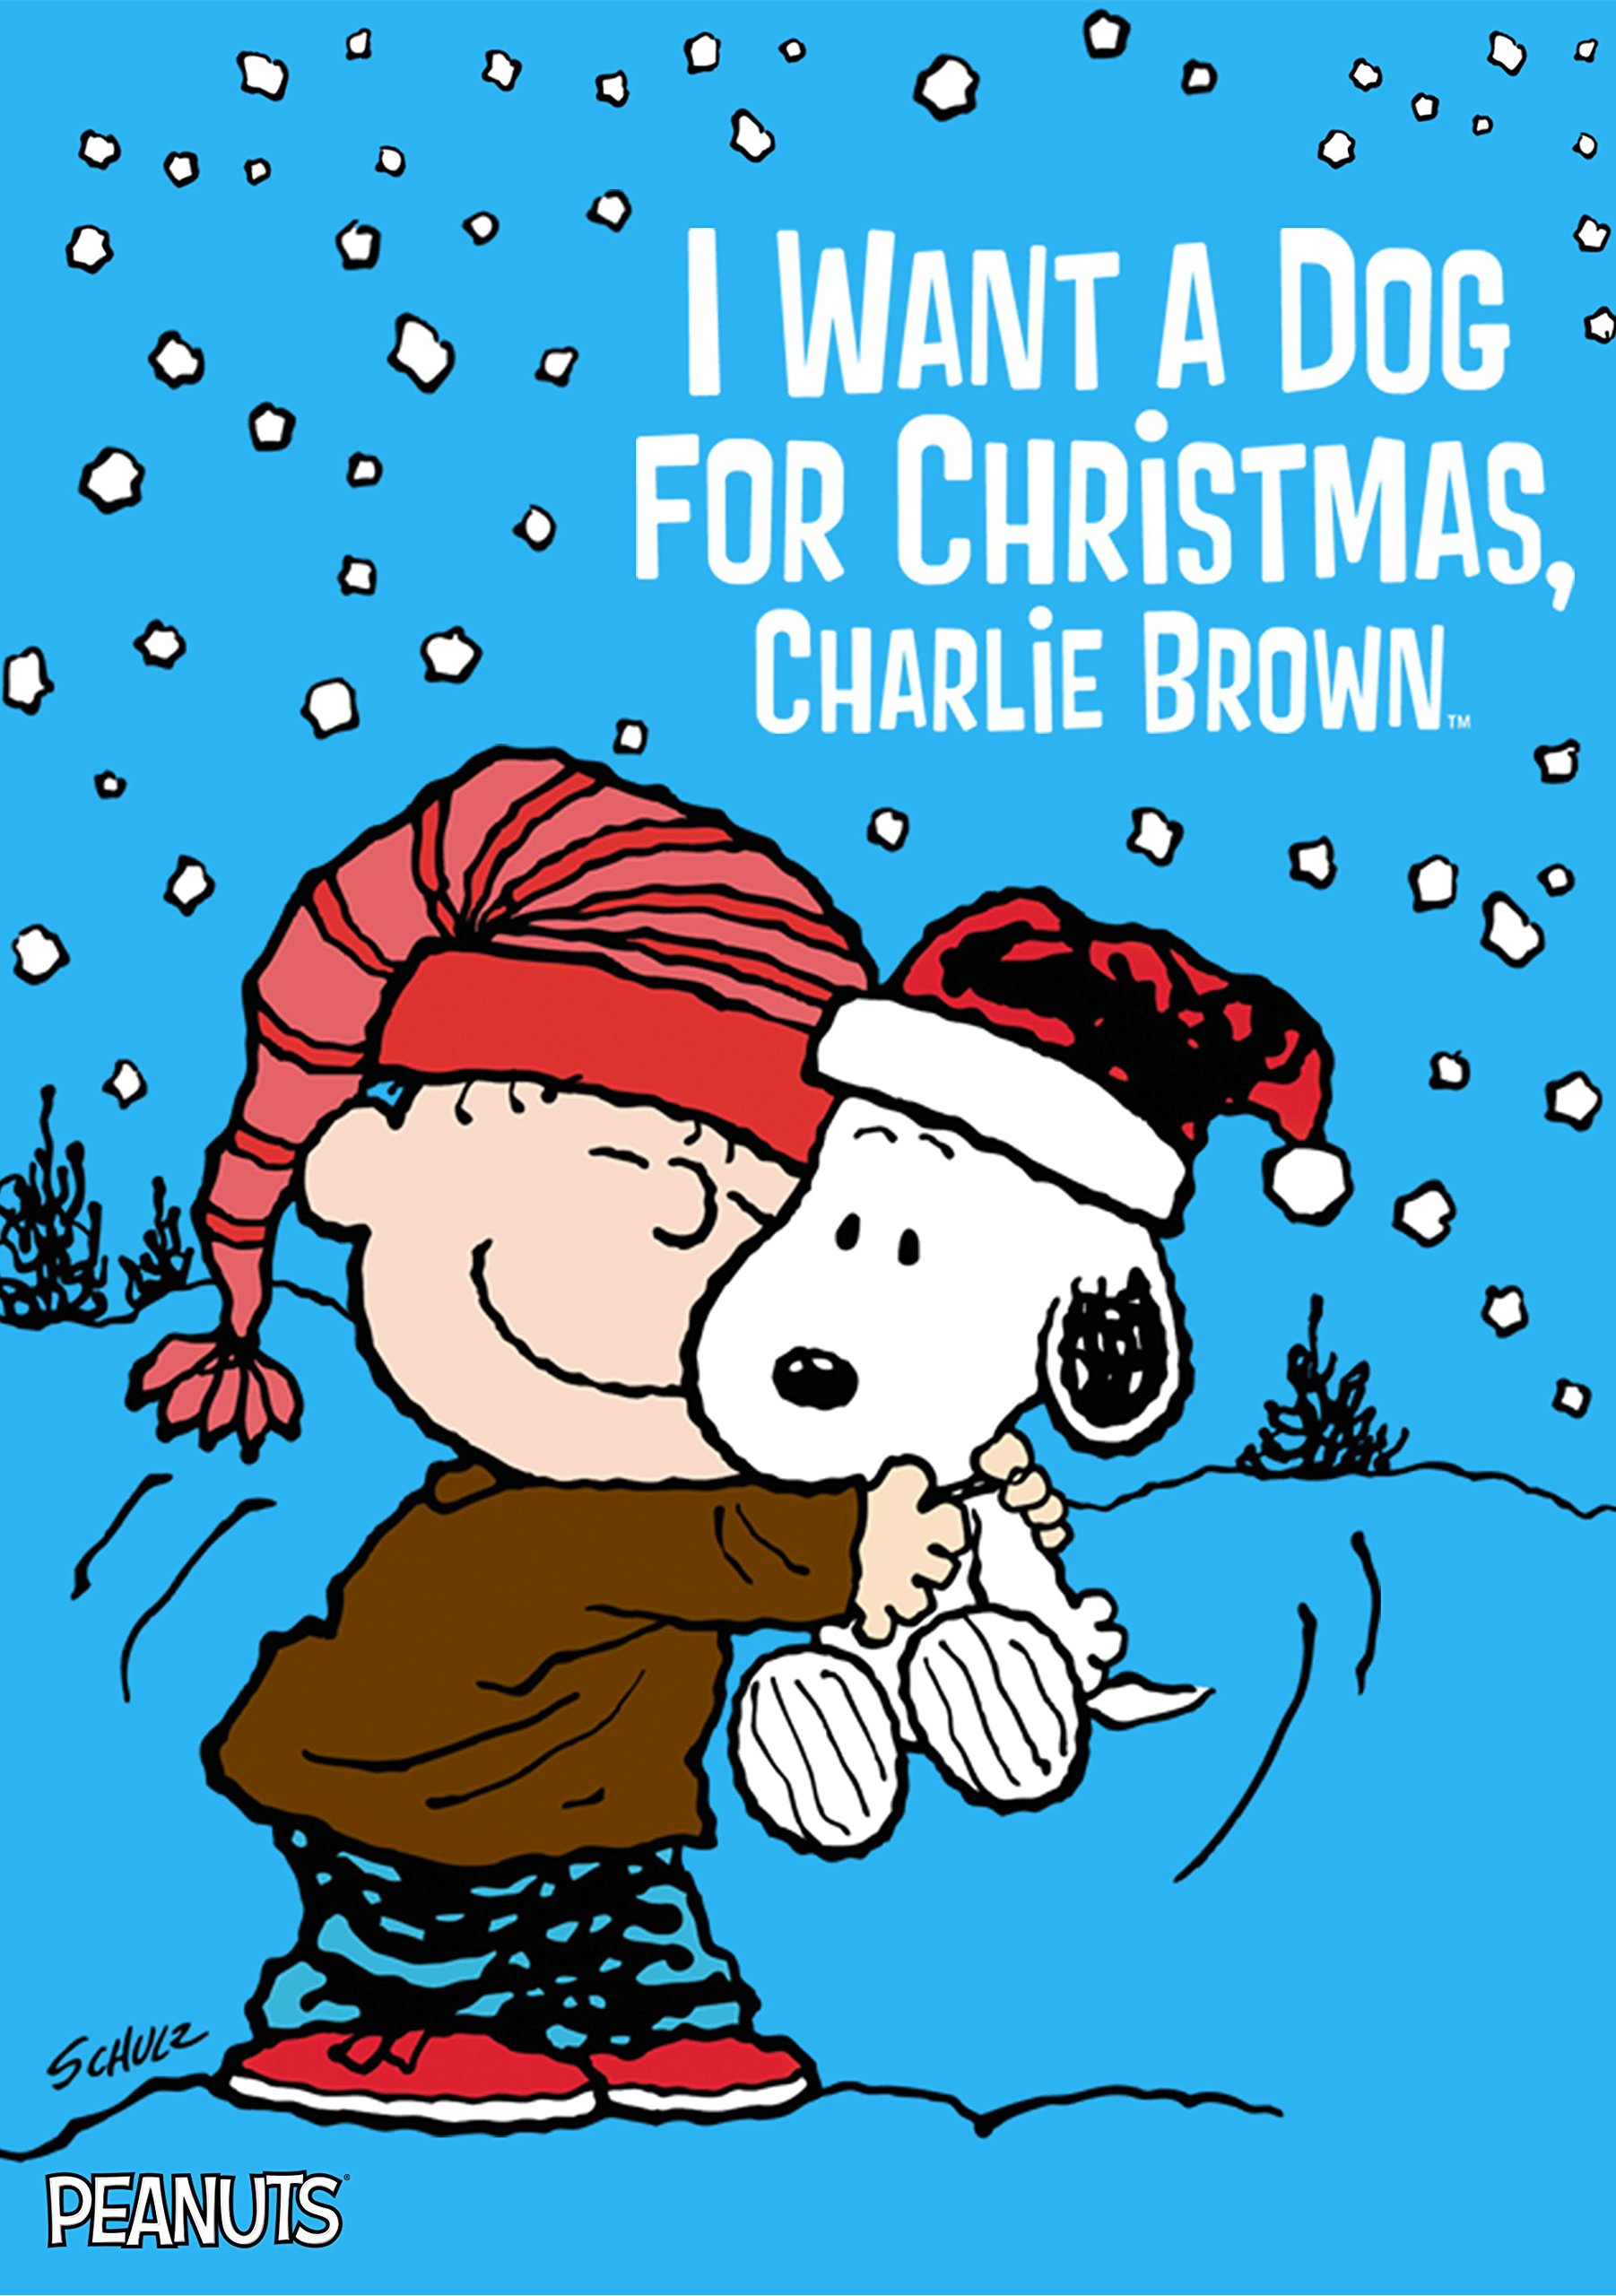 Amazon.com: I Want a Dog for Christmas, Charlie Brown: Jimmy Bennett ...